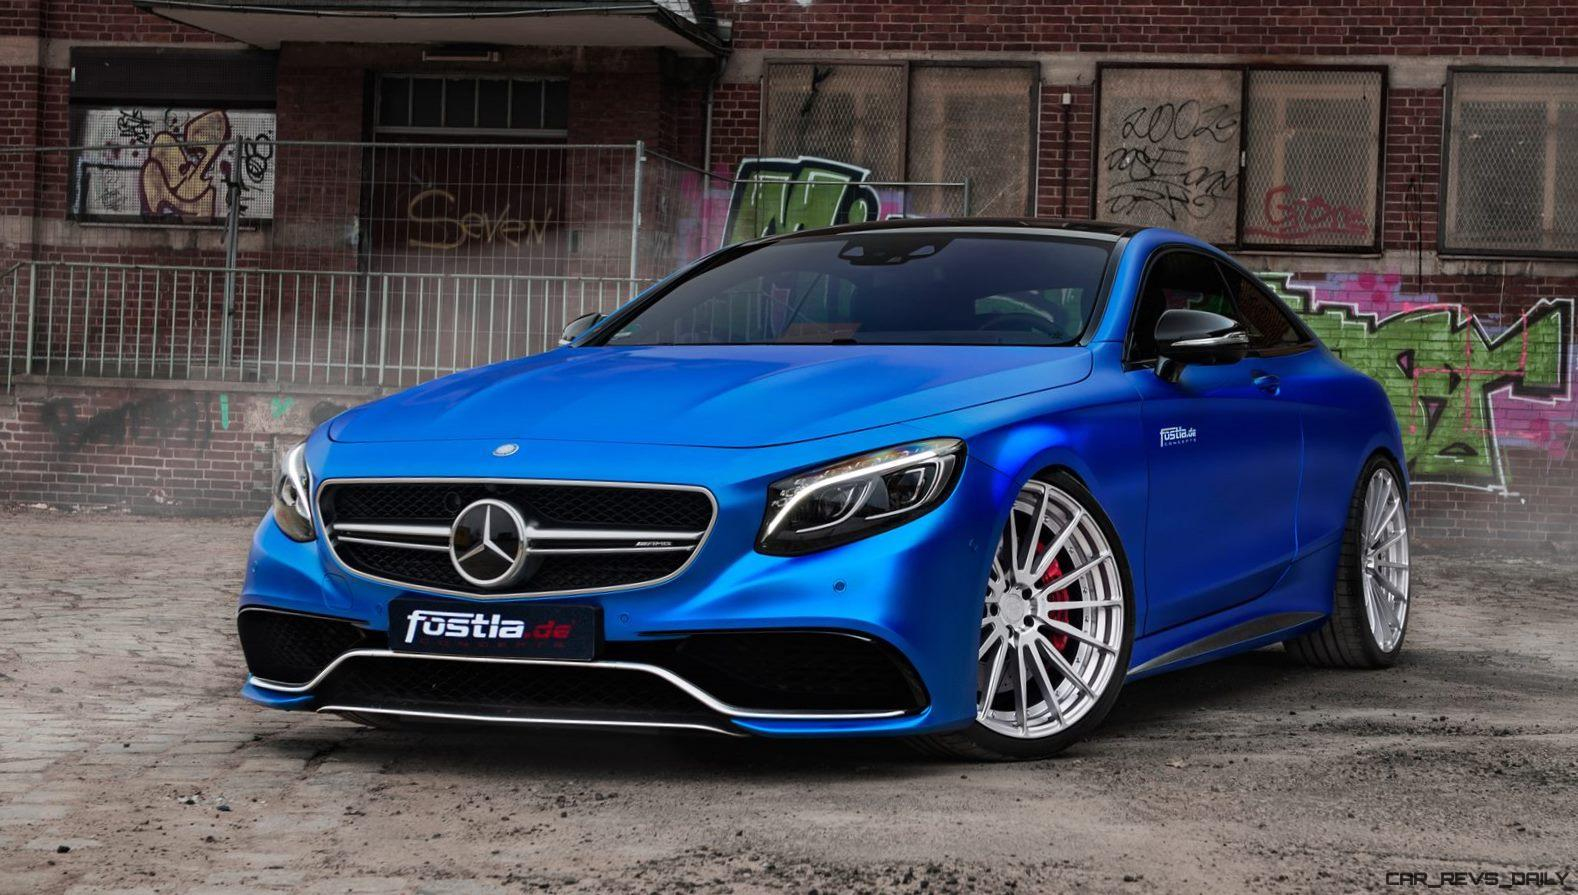 2017 Mercedes AMG S63 Coupe By FOSTLAde Is Dripping Blue